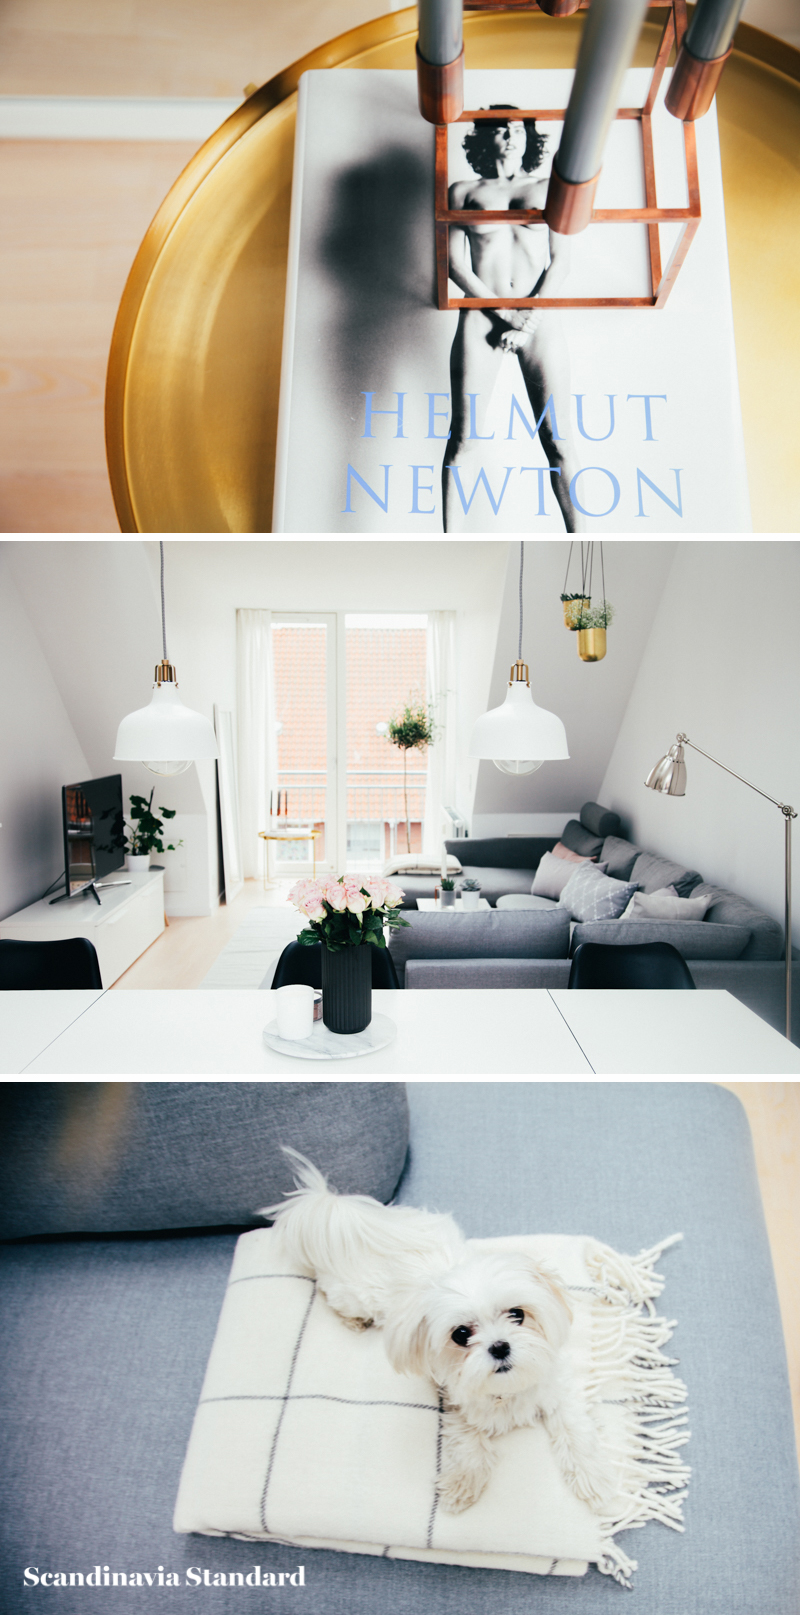 The White Room - Christina & Ulrich's Østerbro Apartment - Interiors - Collage 1 | Scandinavia Standard